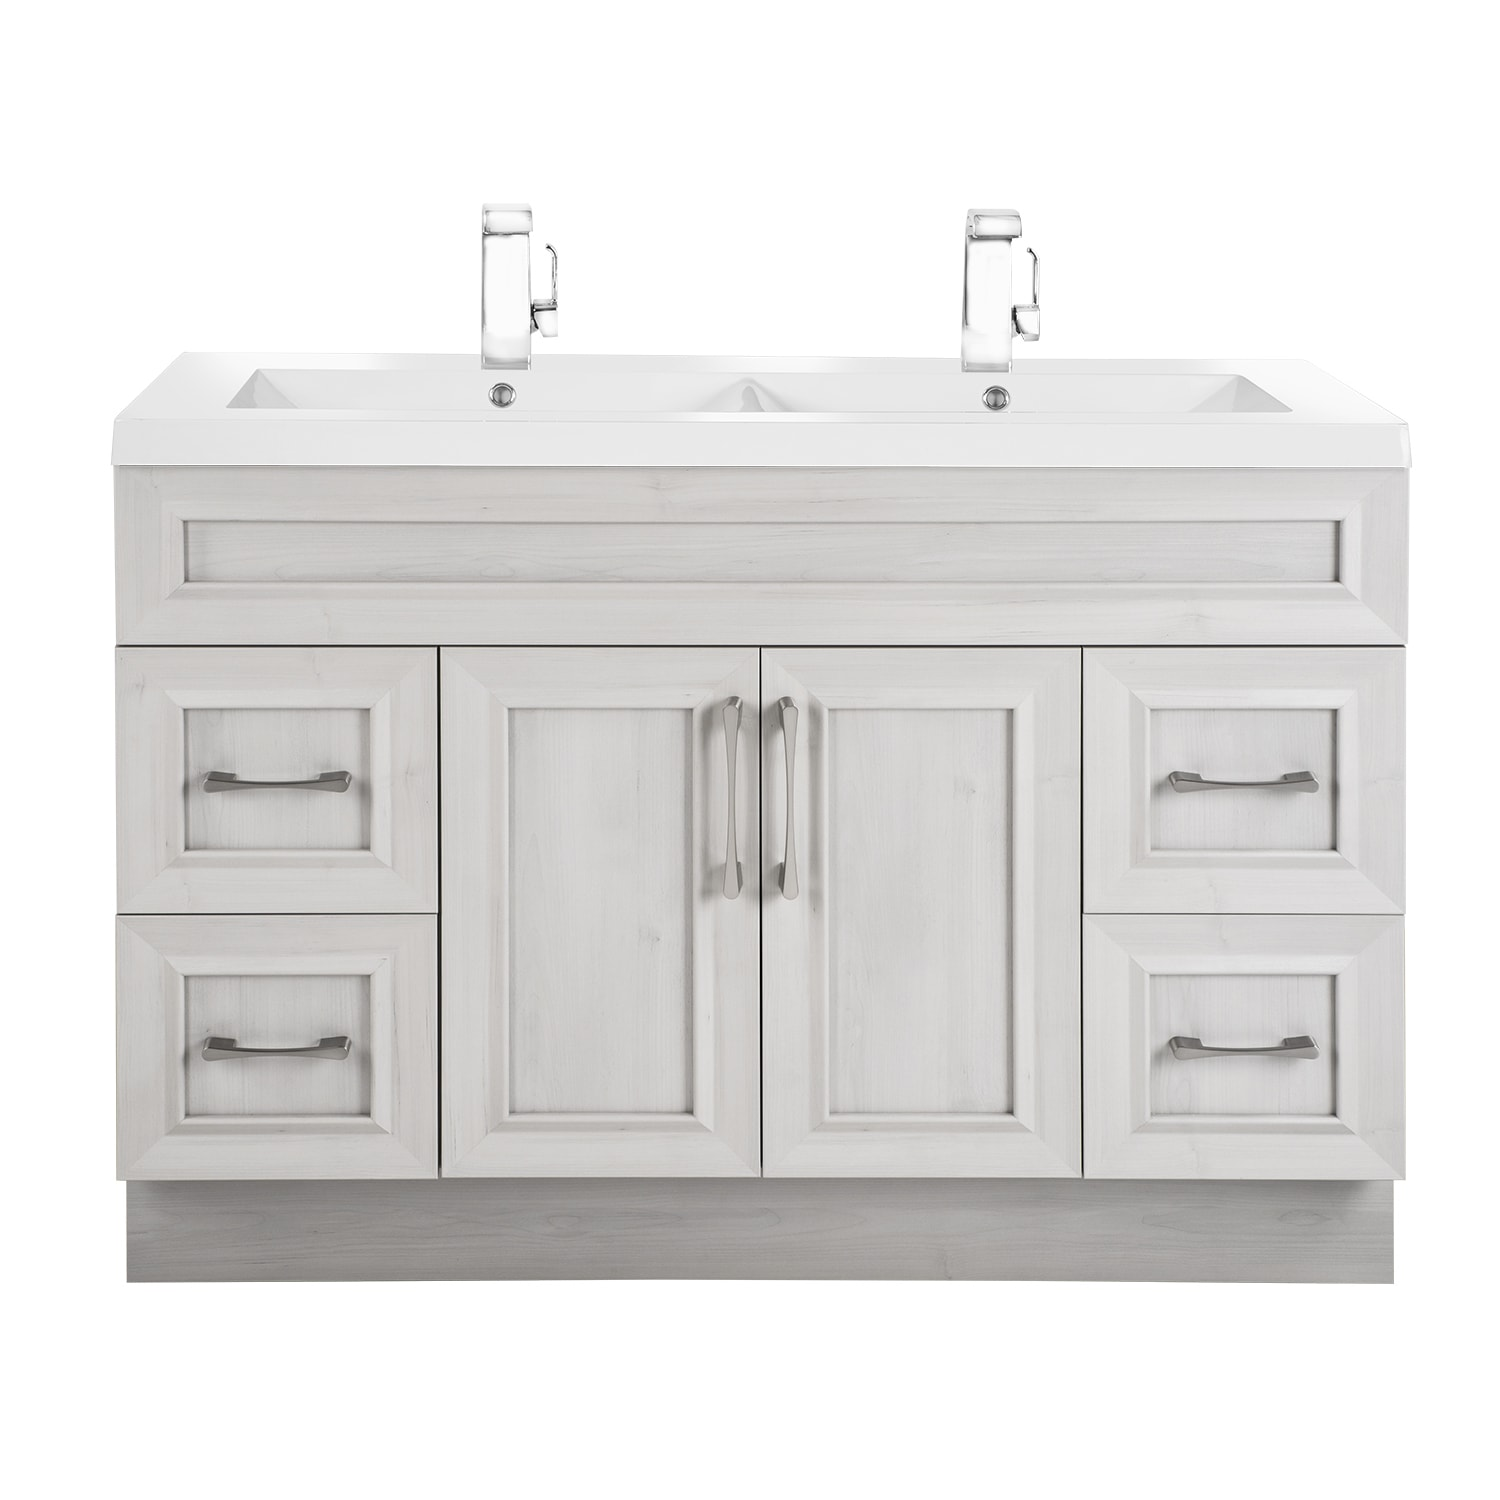 actual marble silhouette top shop bath kitchen bathroom sink common aria in x drop vanity cutler single with pd cultured